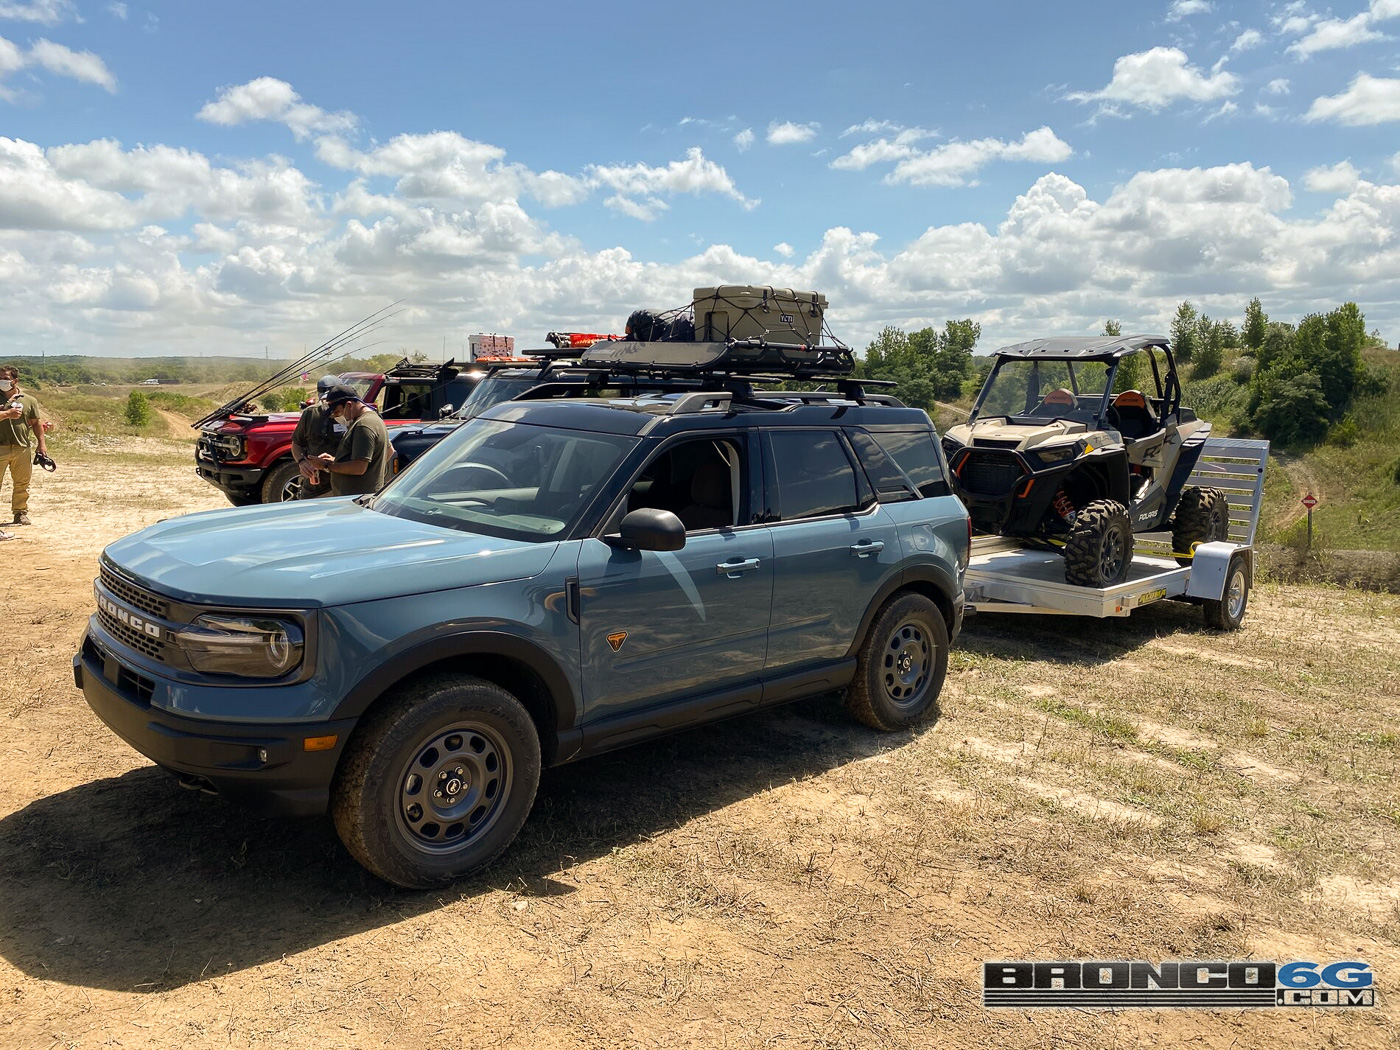 2021-Bronco-First-Ride-Along-Event-8.jpg